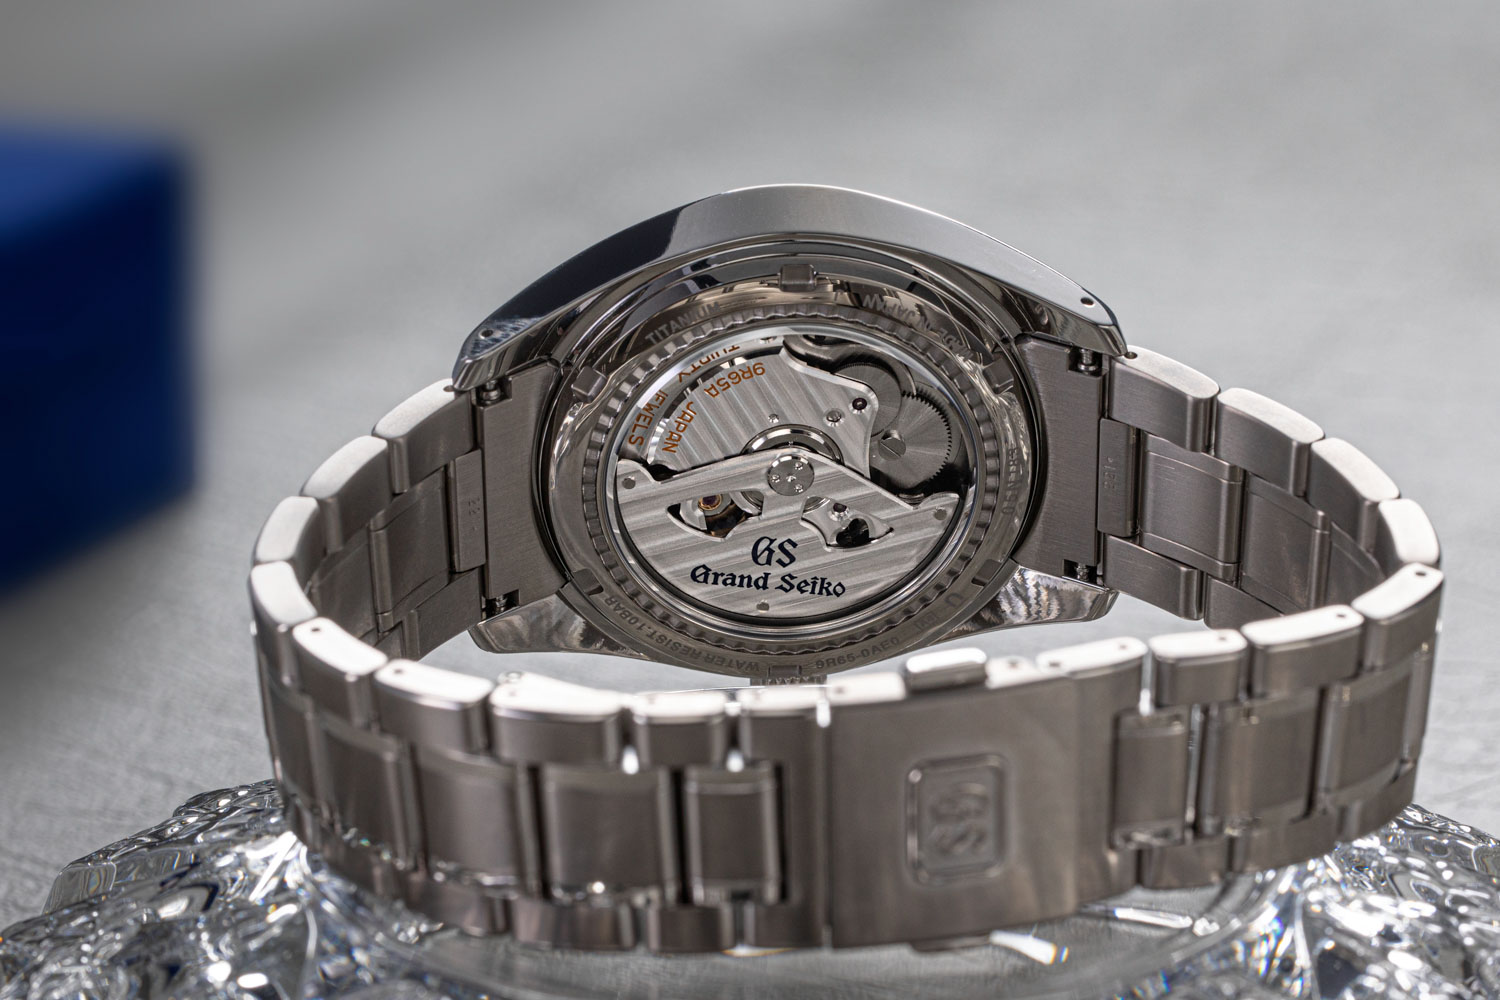 The Grand Seiko 'Snowflake' SBGA211 is powered by the automatic Spring Drive 3-Day Caliber 9R65 (©Revolution)